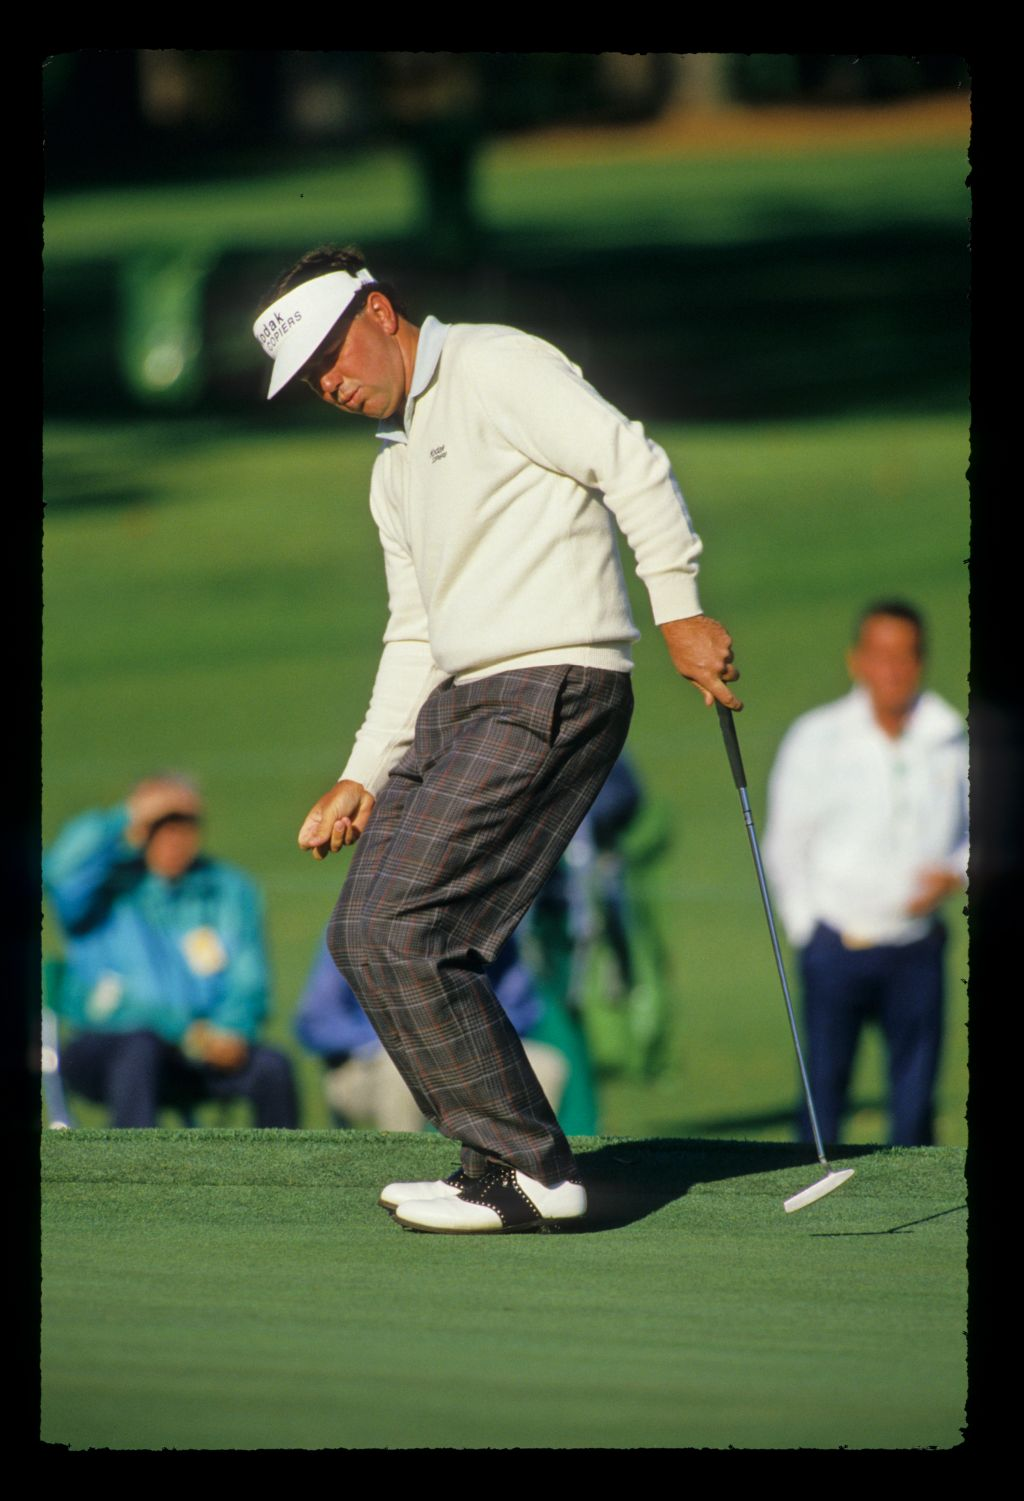 Mark O'Meara reacting to a putt during the 1988 Masters